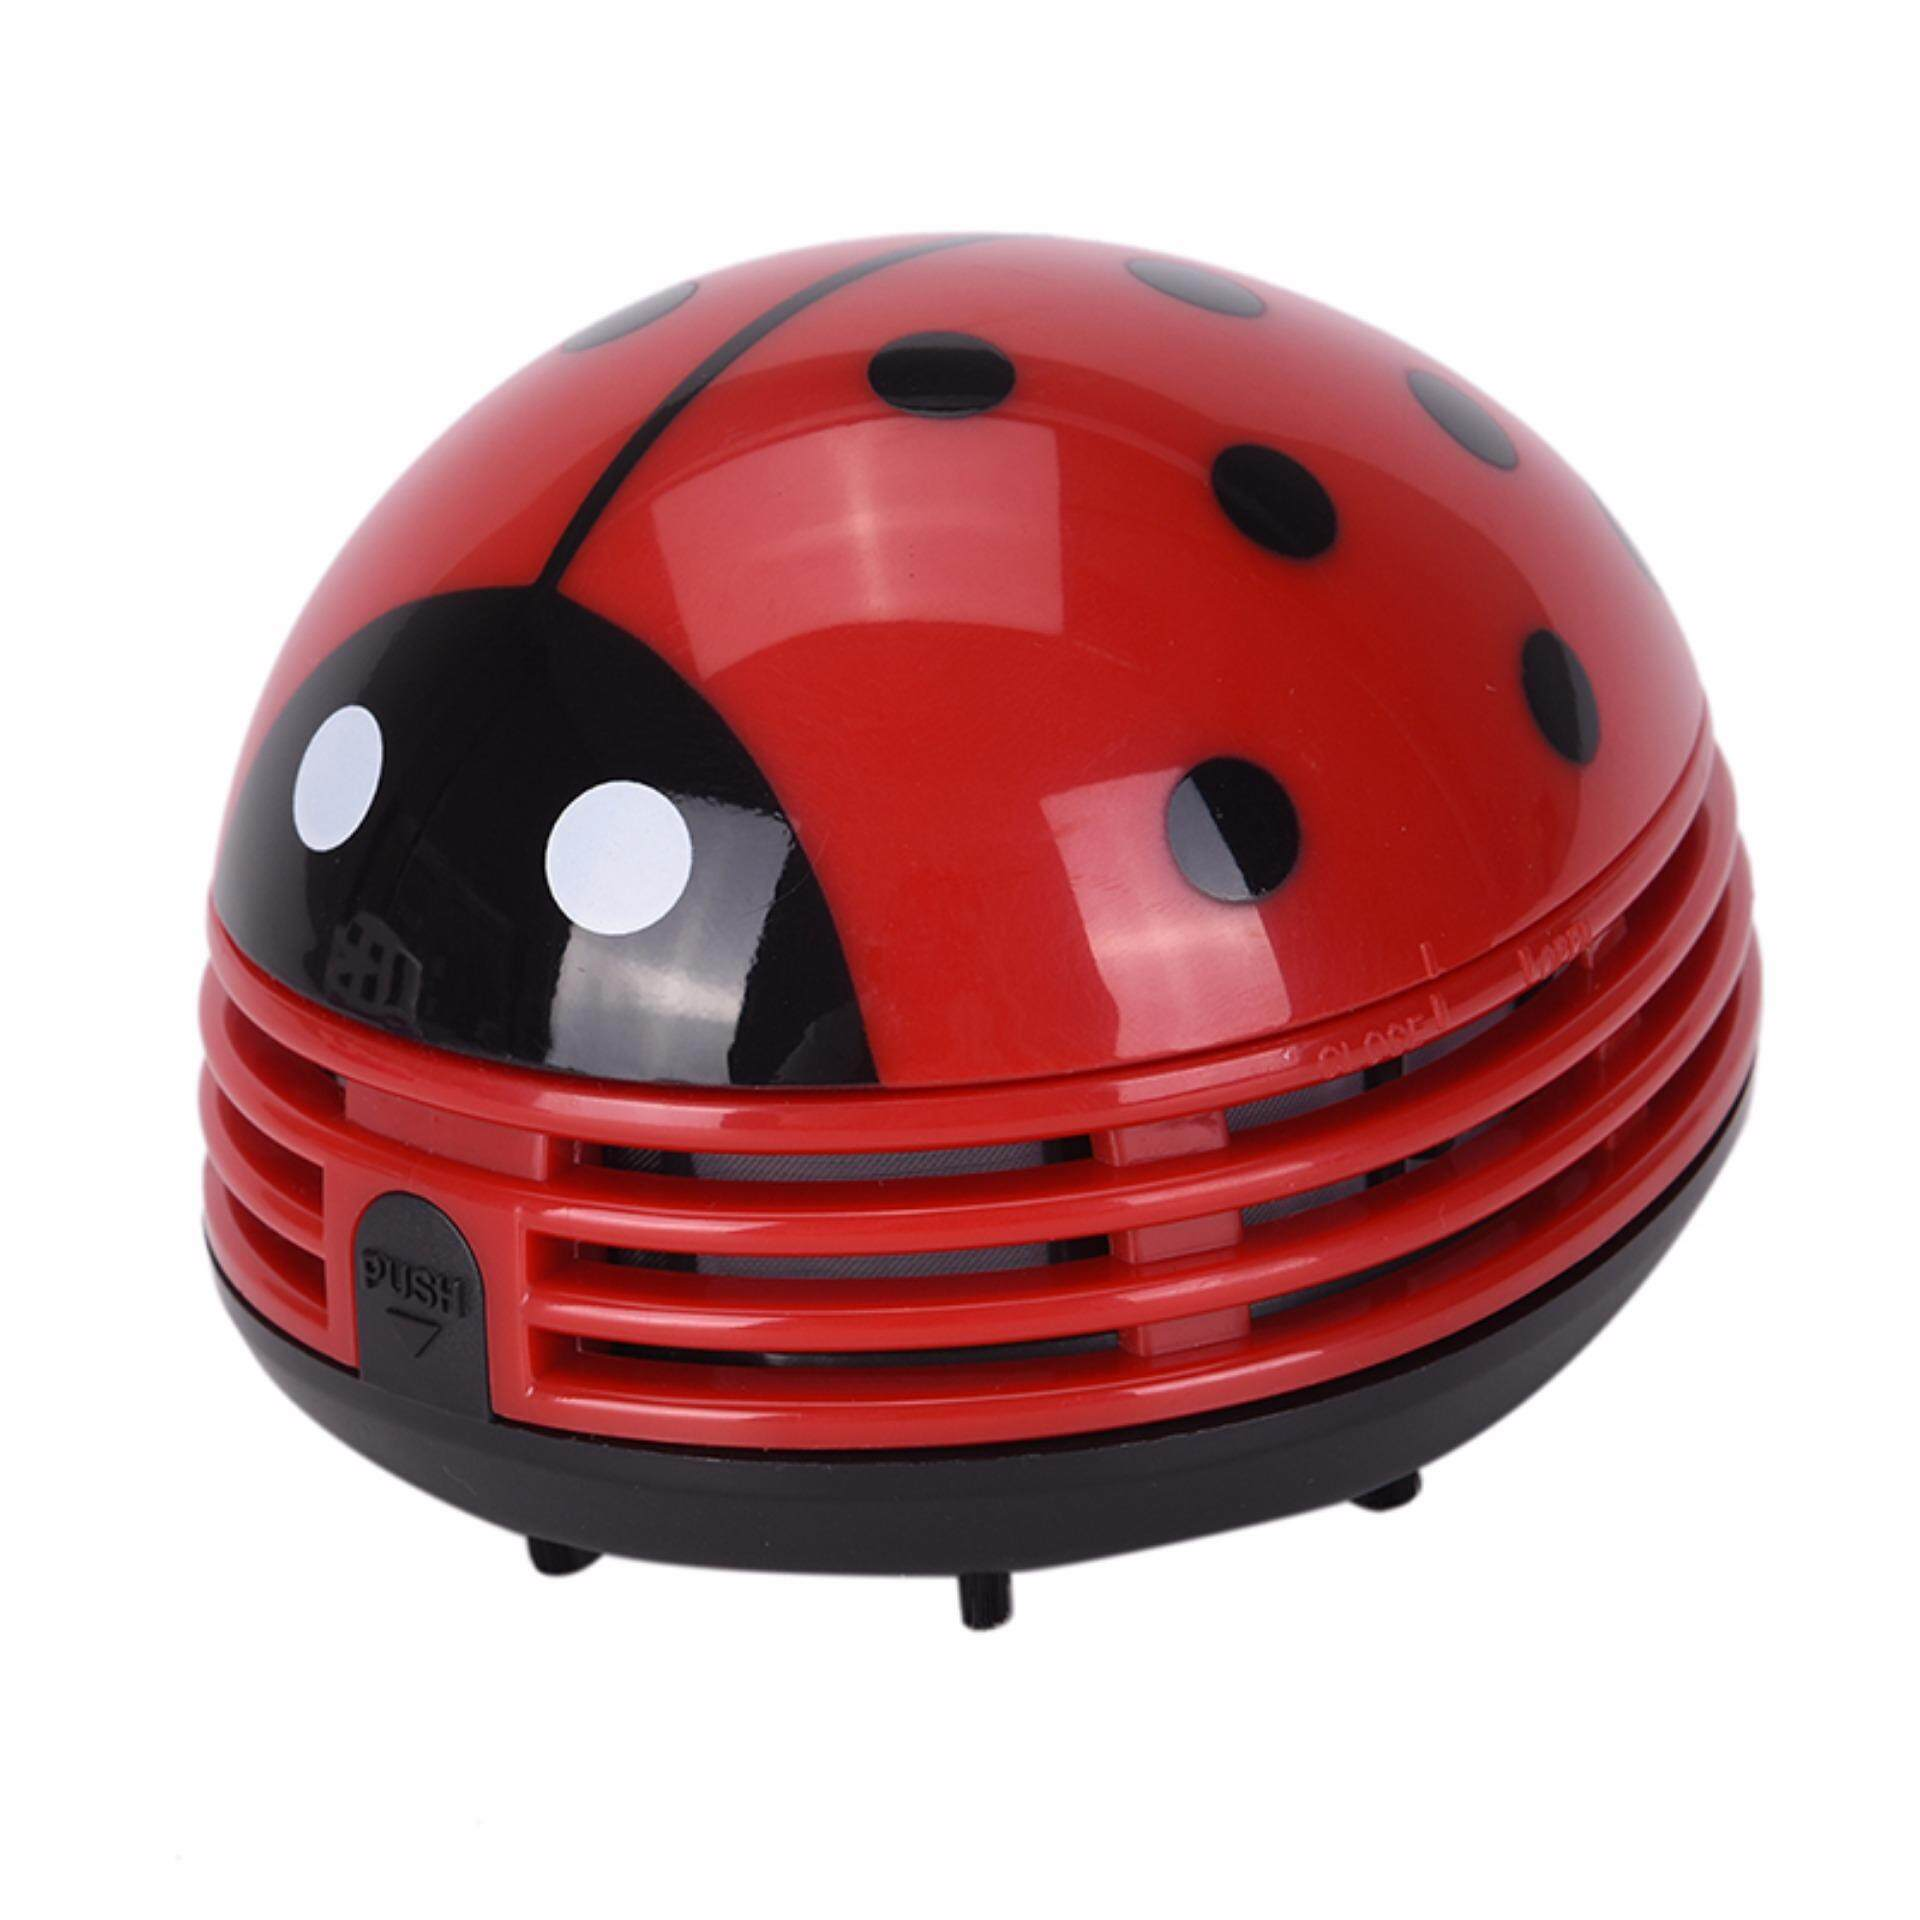 Hình ảnh Mini Ladybug Desktop Coffee Table Vacuum Cleaner Dust Collector For Home Office Ladybug